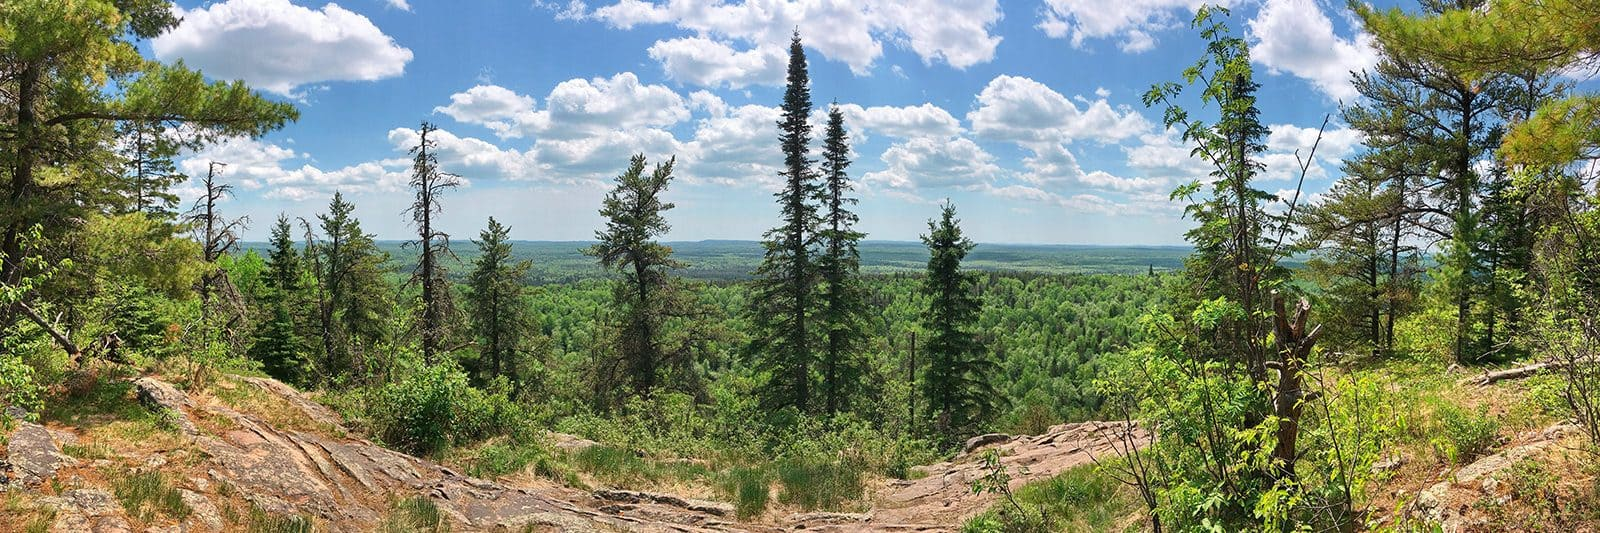 Eagle Mountain, the highest point in Minnesota